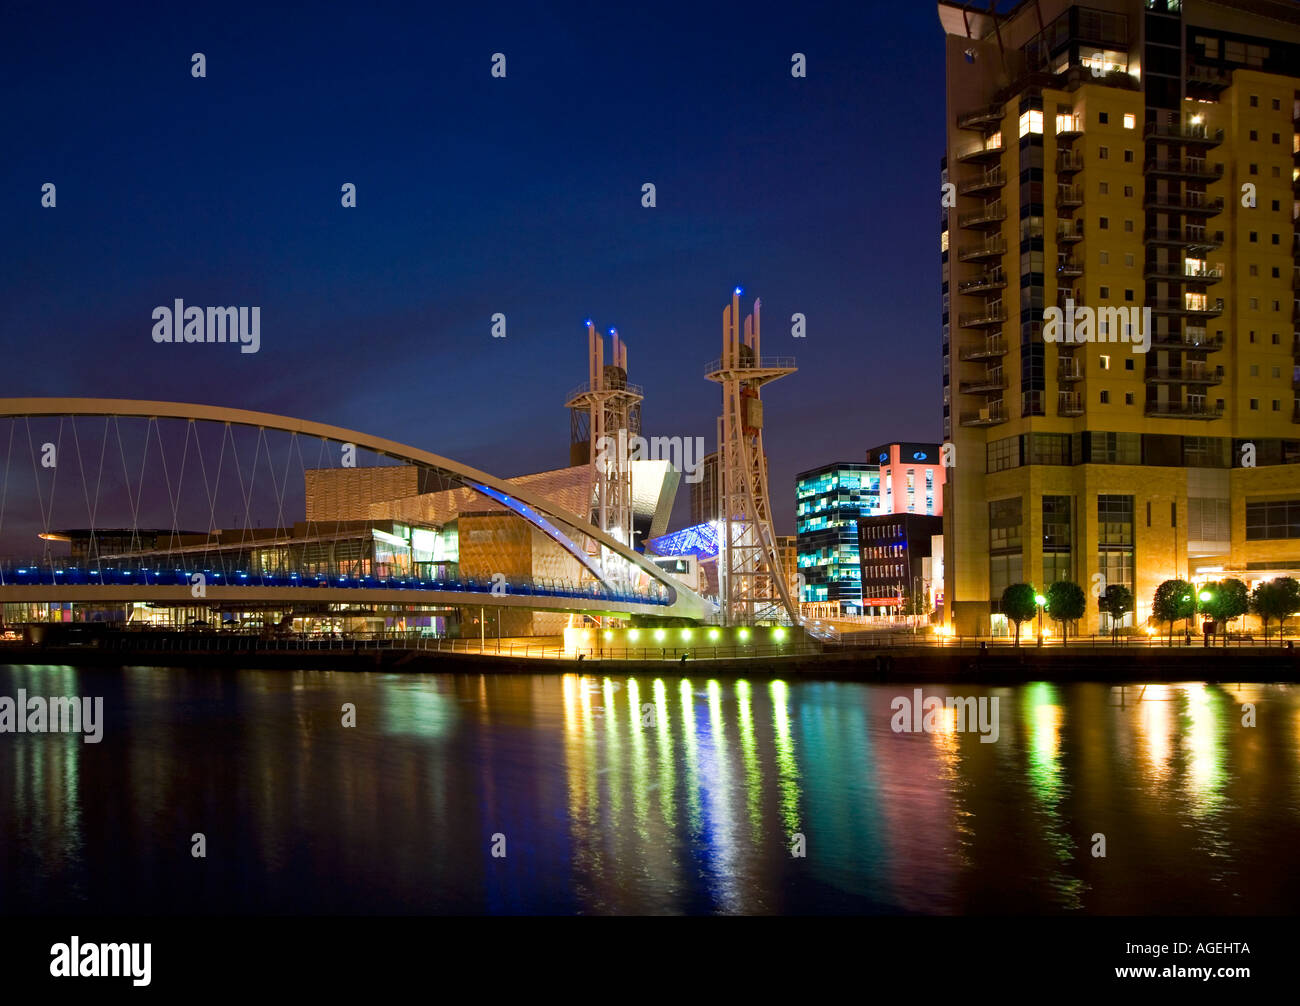 The Lowry Centre, Imperial Point Building and Swingbridge at Night, Salford Quays, Greater Manchester, England, UK - Stock Image